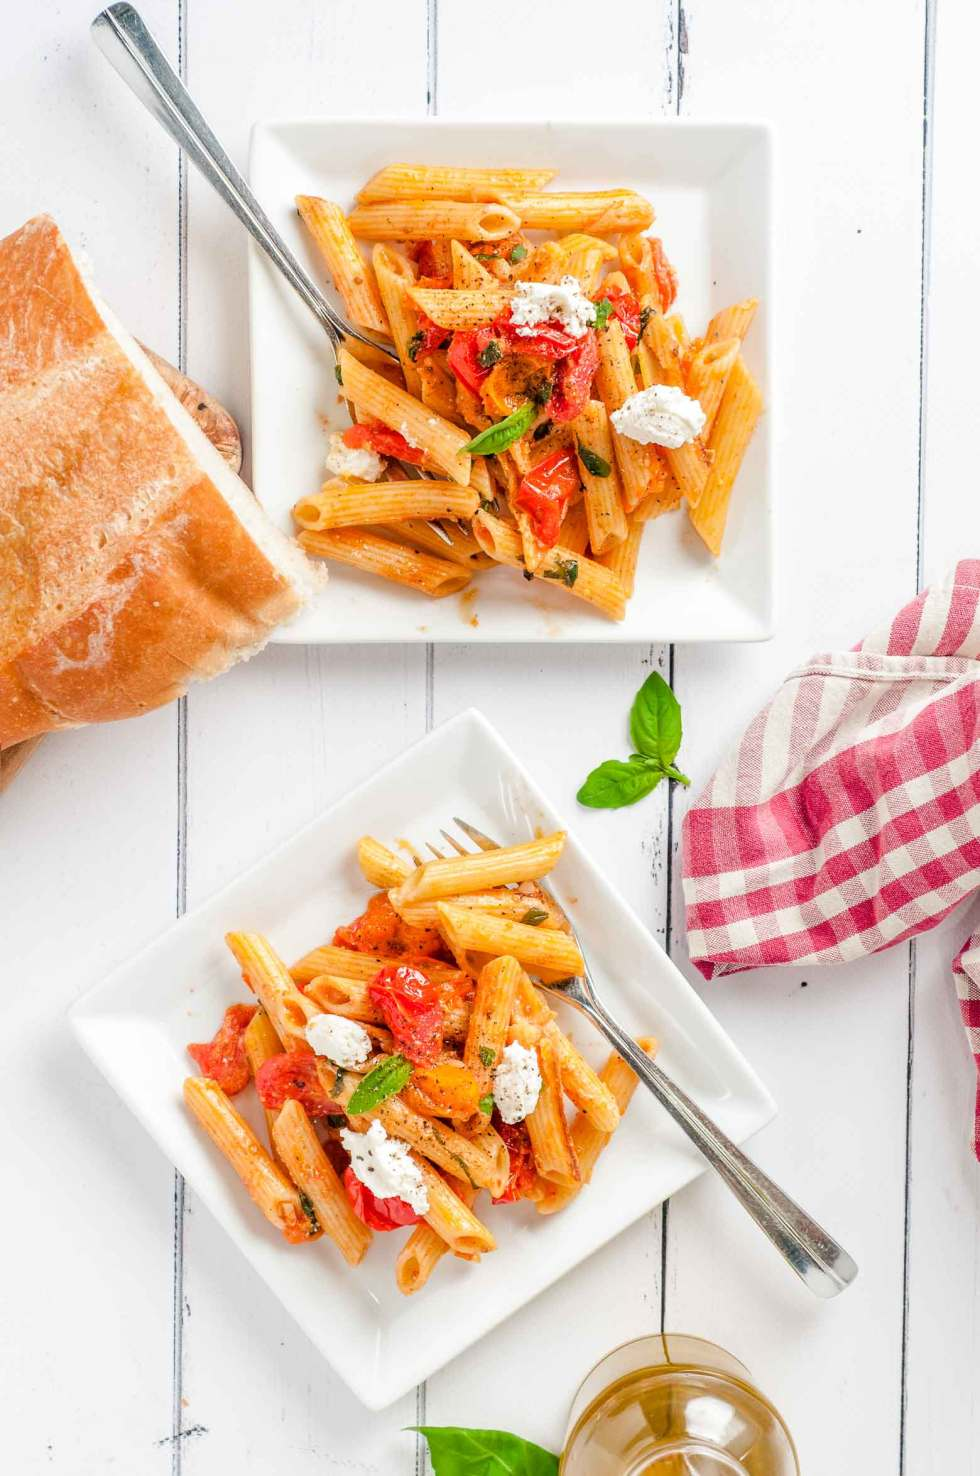 bread, a red checked napkin and 2 plates of rigatoni noodles coated in a tomato basil sauce